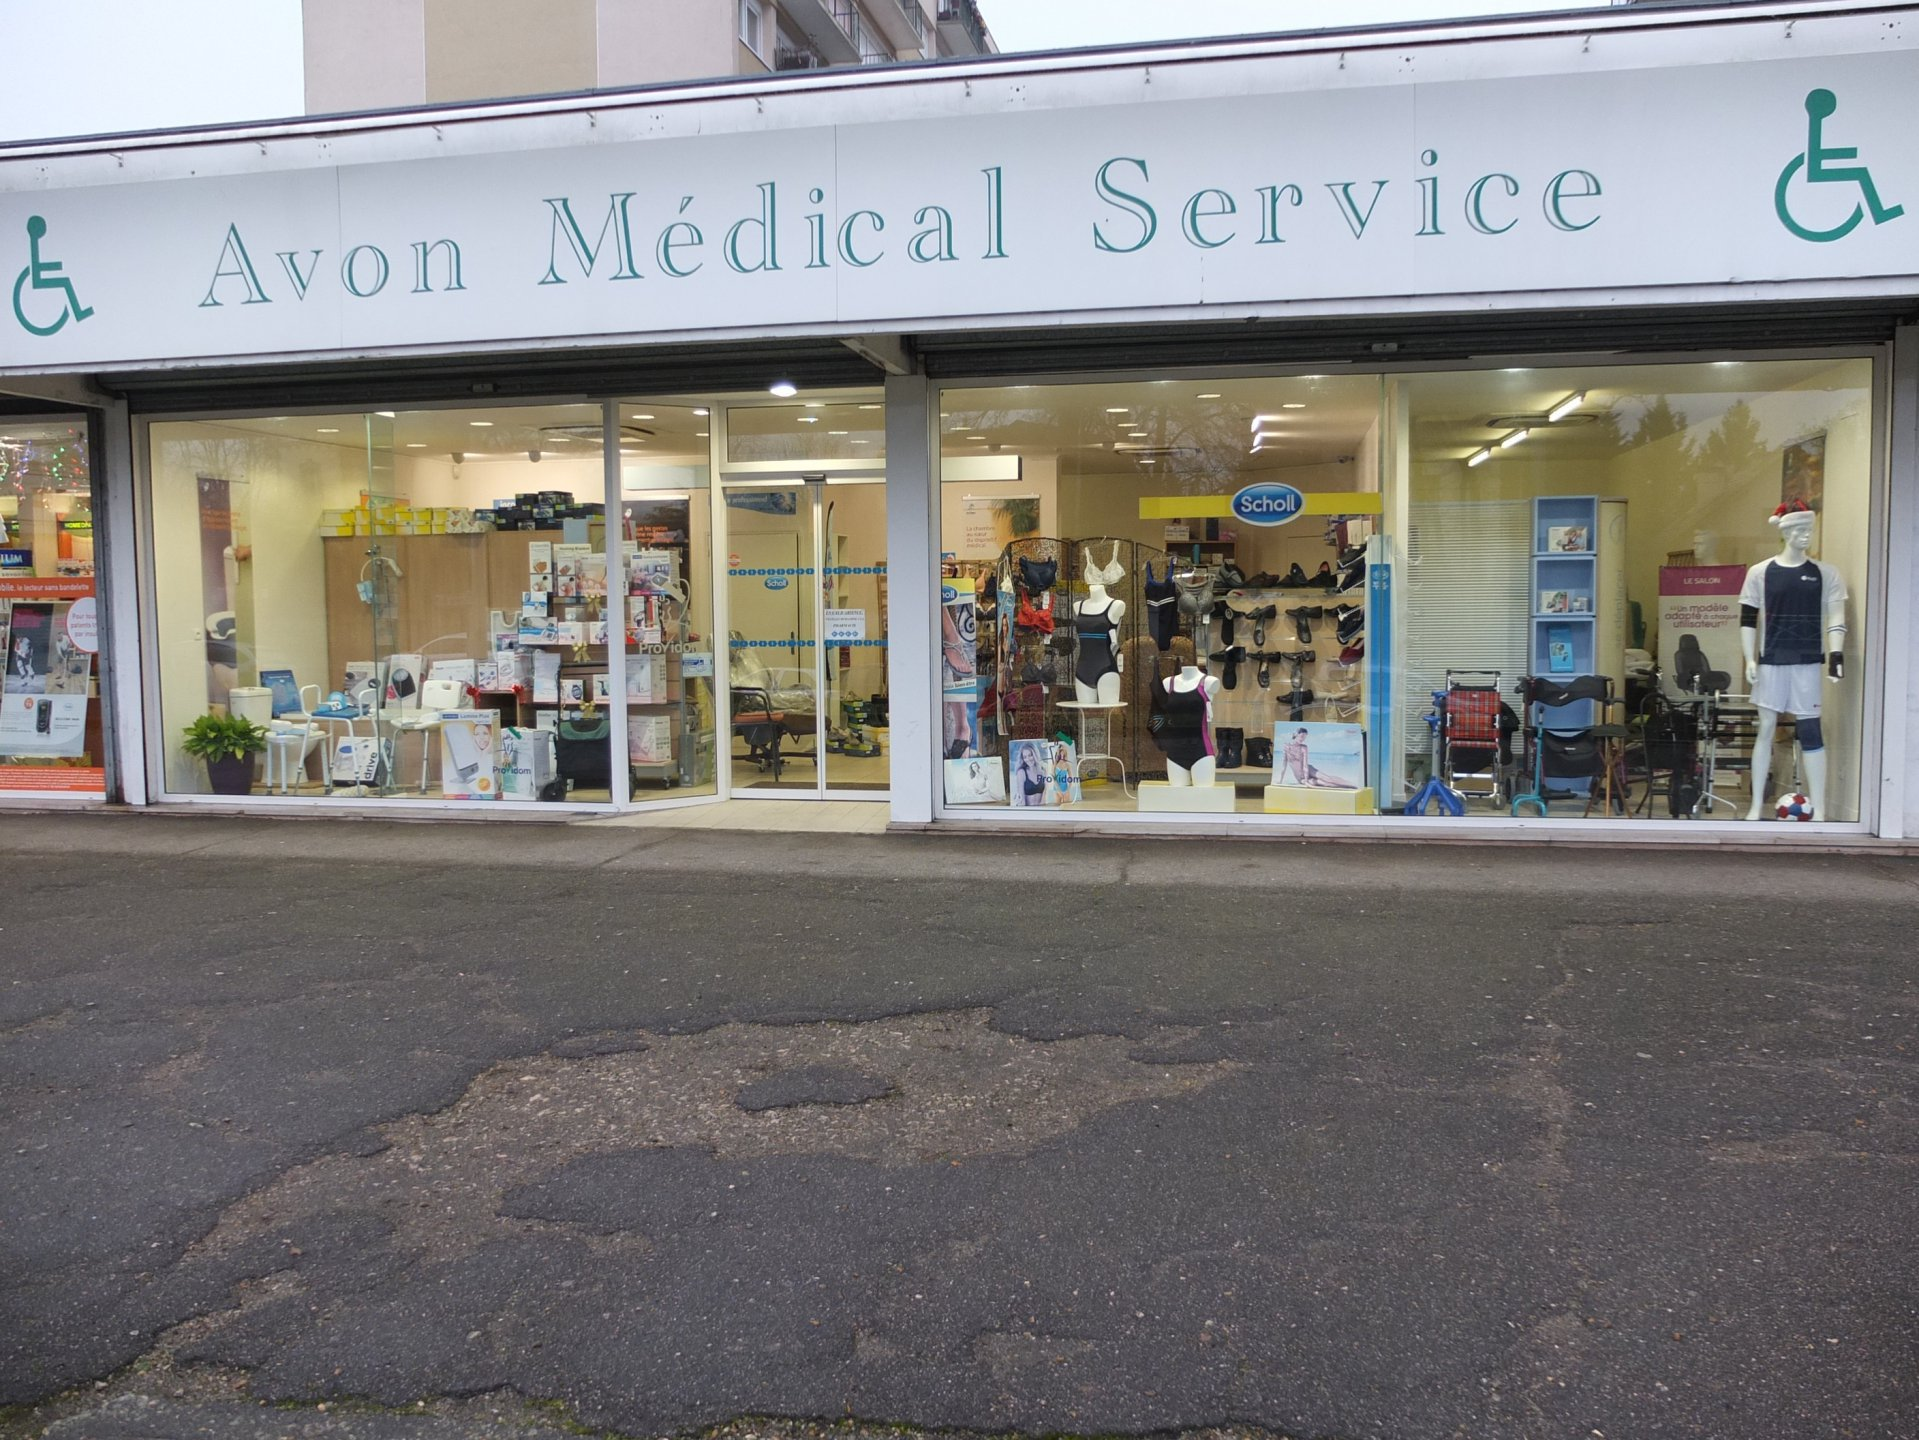 Sale Retail - Avon